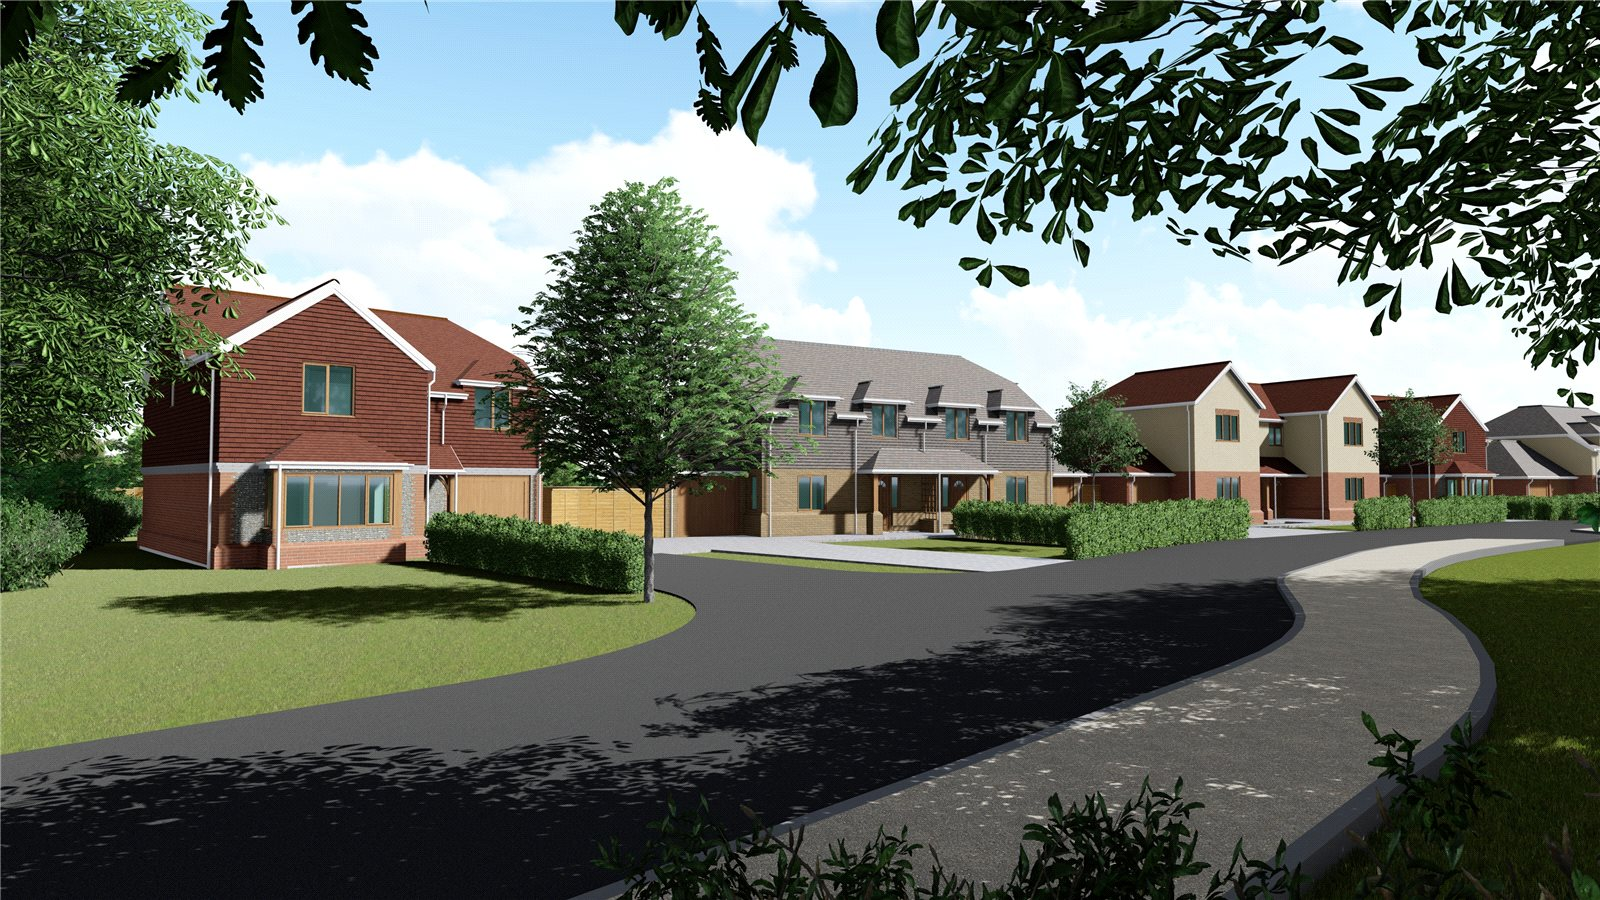 3 bed house for sale in Starlings View, Arundel Road, Angmering 4